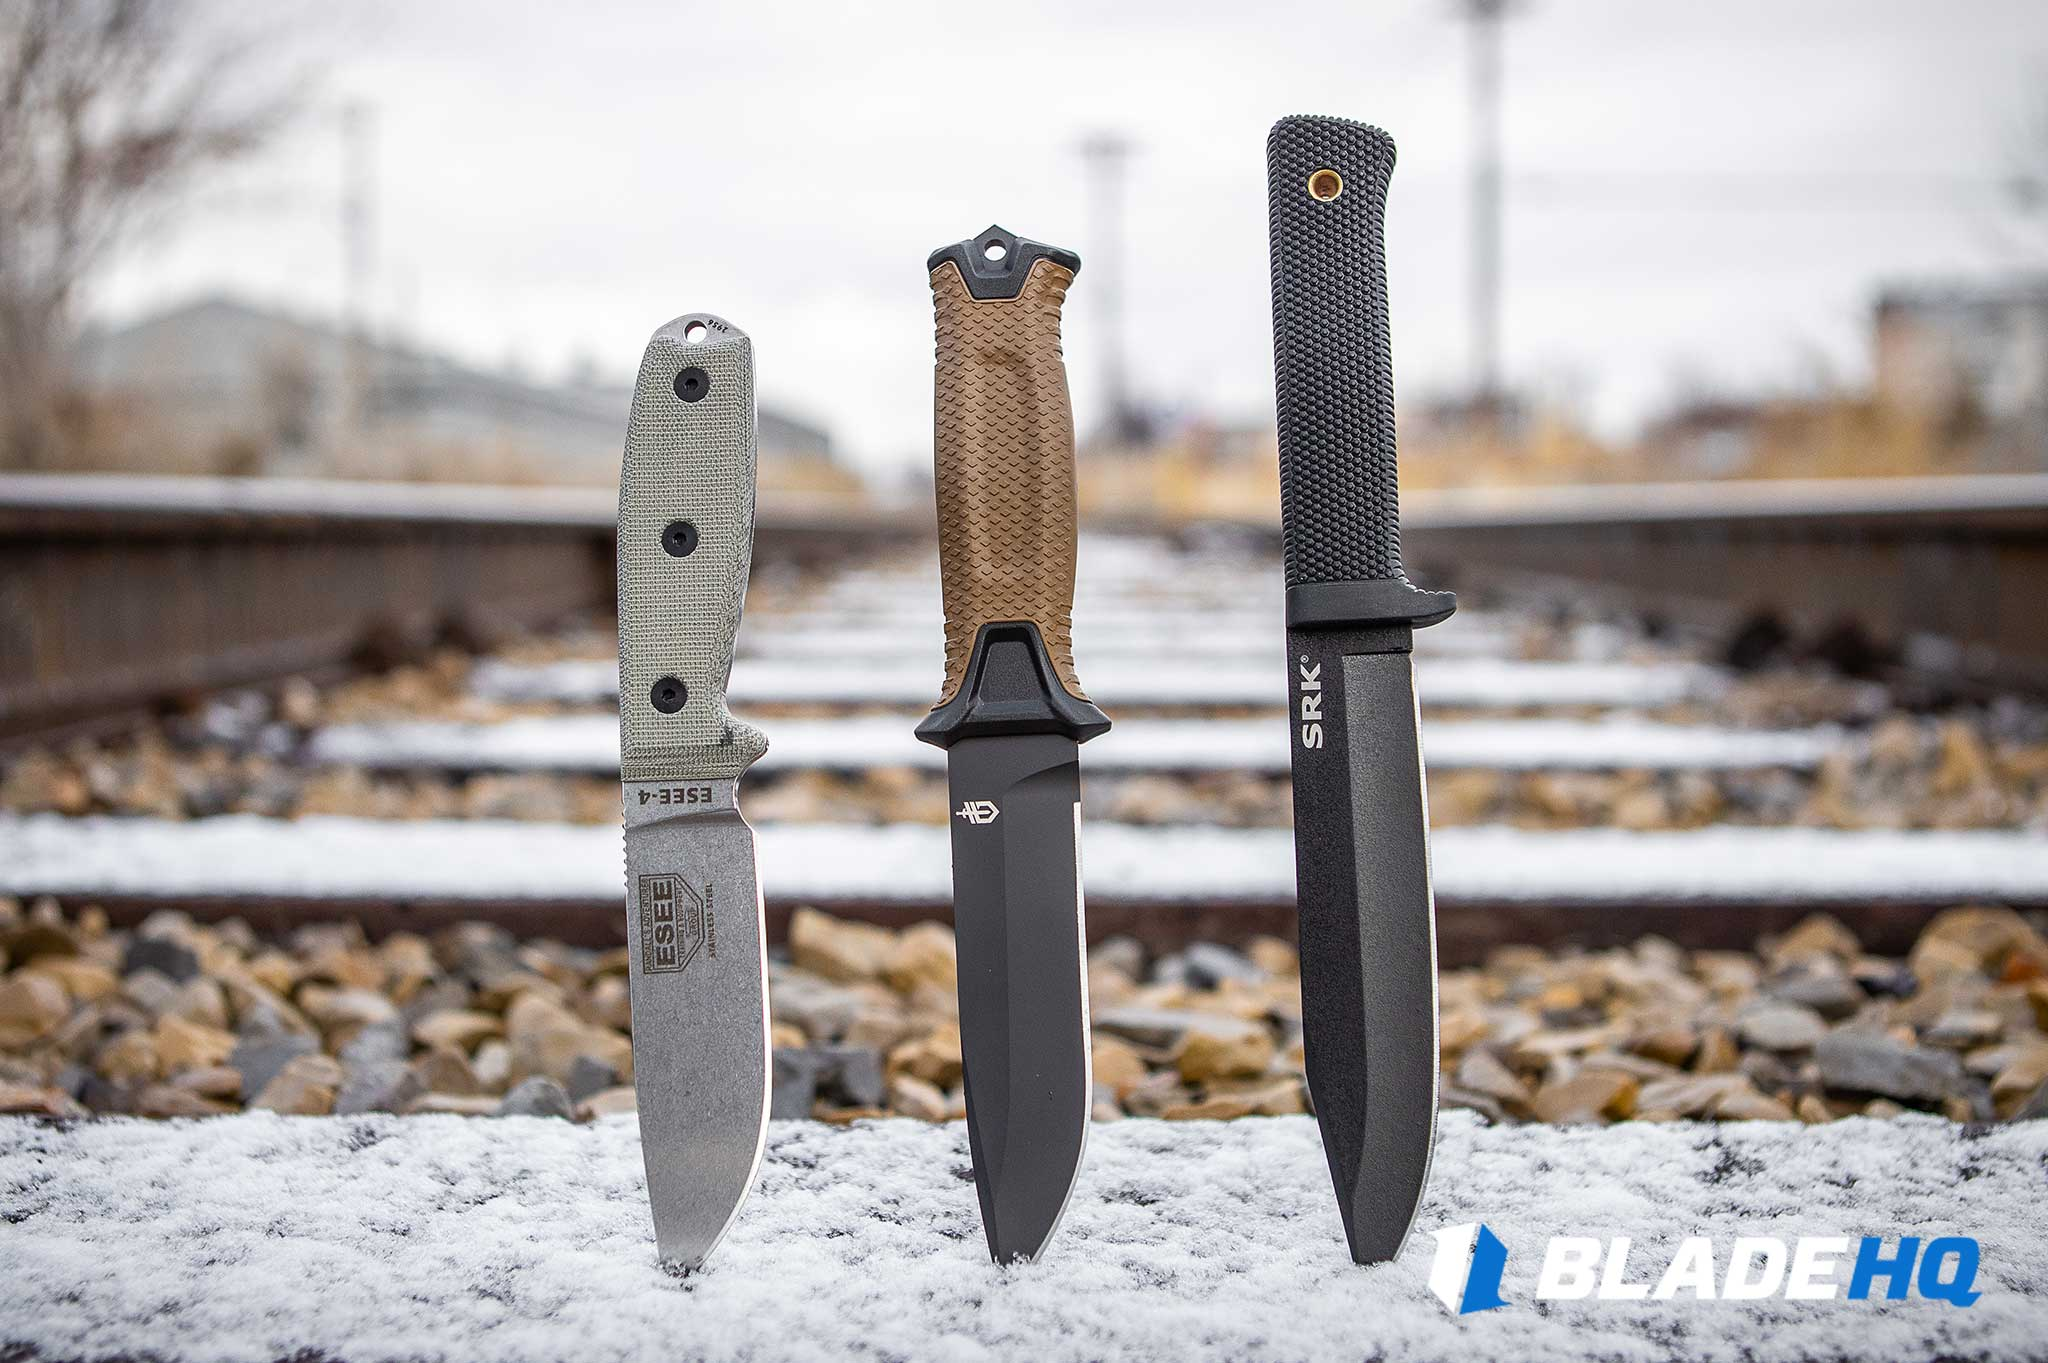 Survival Knives - Materials